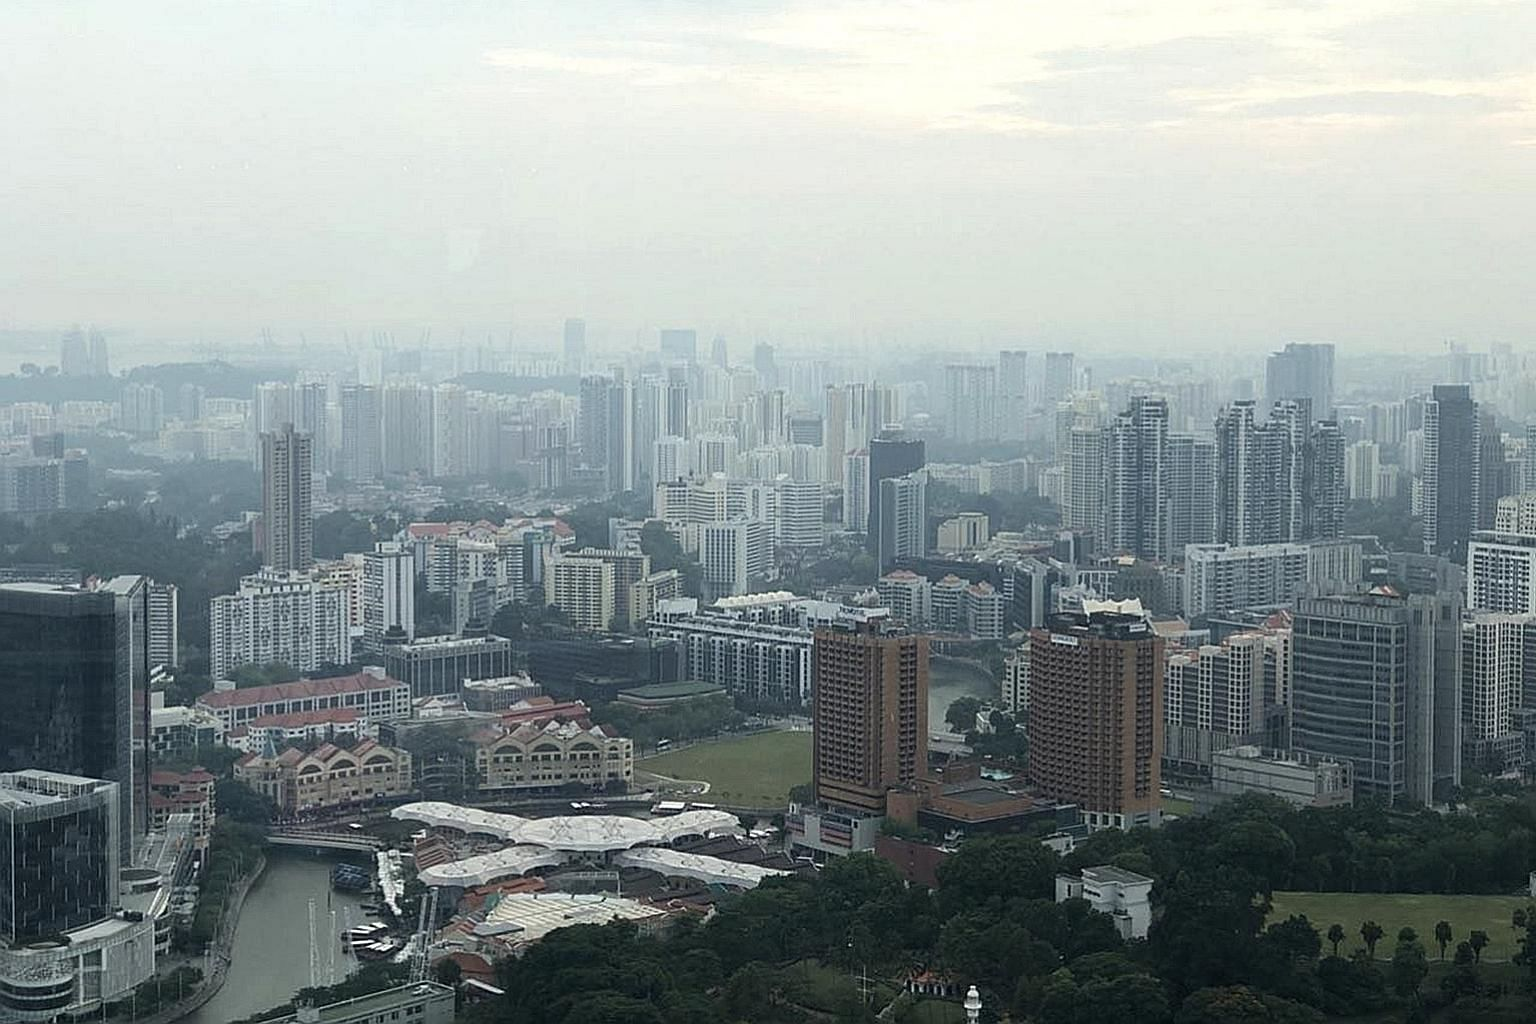 """The view from Equinox on level 70 of Swissotel yesterday. NEA said it had detected """"a hot spot with dense smoke plume in the south-eastern part of Johor"""" in the afternoon."""